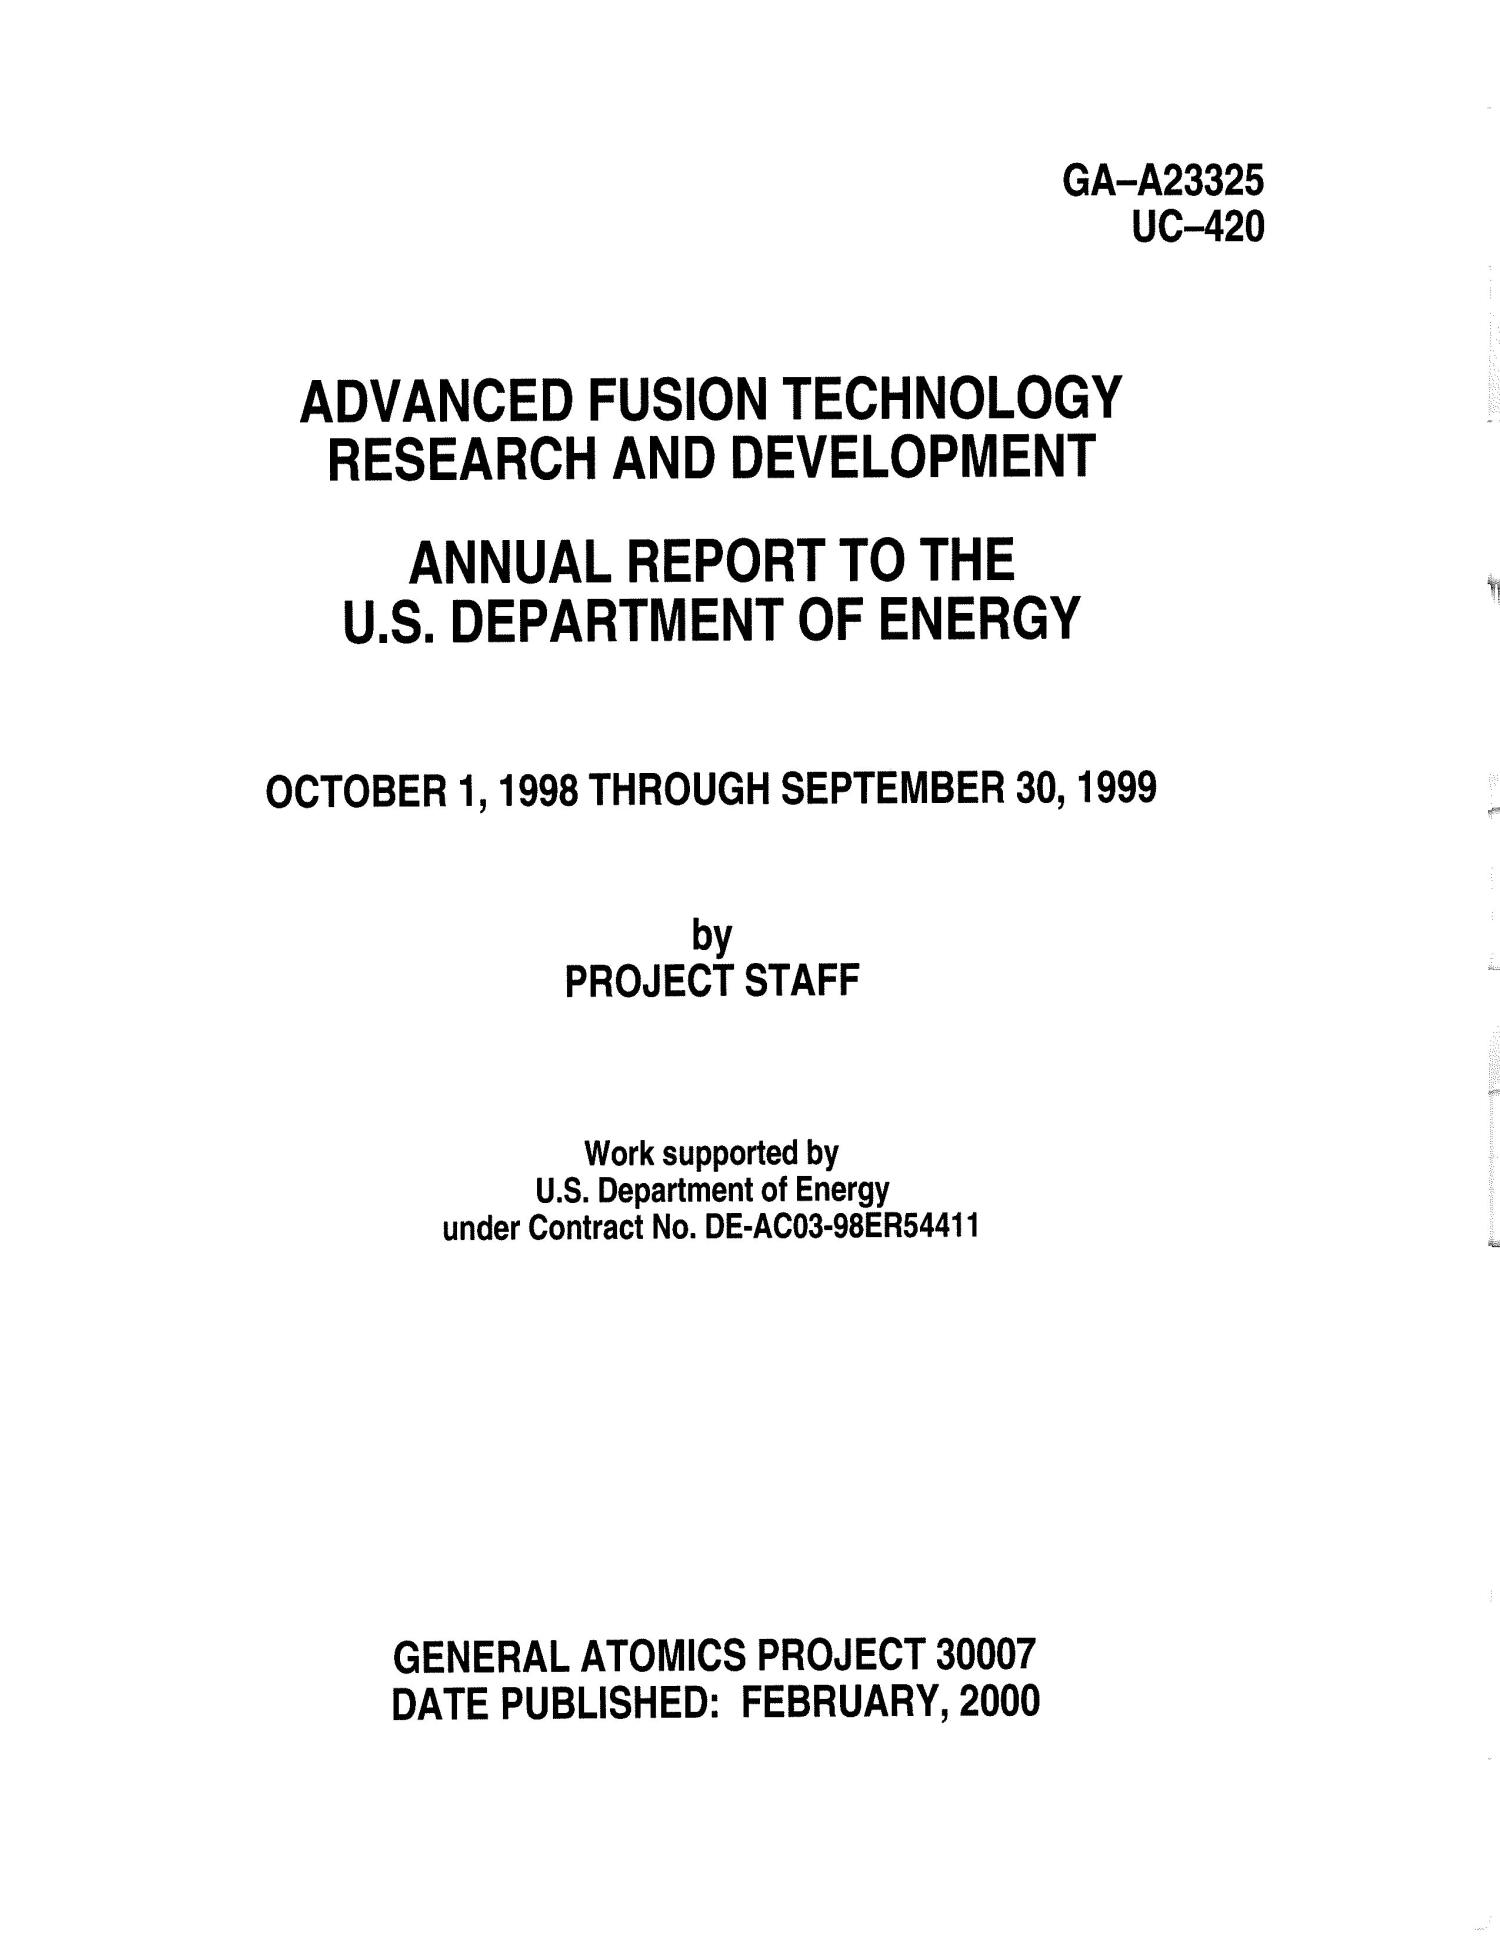 ADVANCED FUSION TECHNOLOGY RESEARCH AND DEVELOPMENT ANNUAL REPORT TO THE U.S. DEPARTMENT OF ENERGY OCTOBER 1, 1998 THROUGH SEPTEMBER 30, 1999                                                                                                      [Sequence #]: 2 of 44